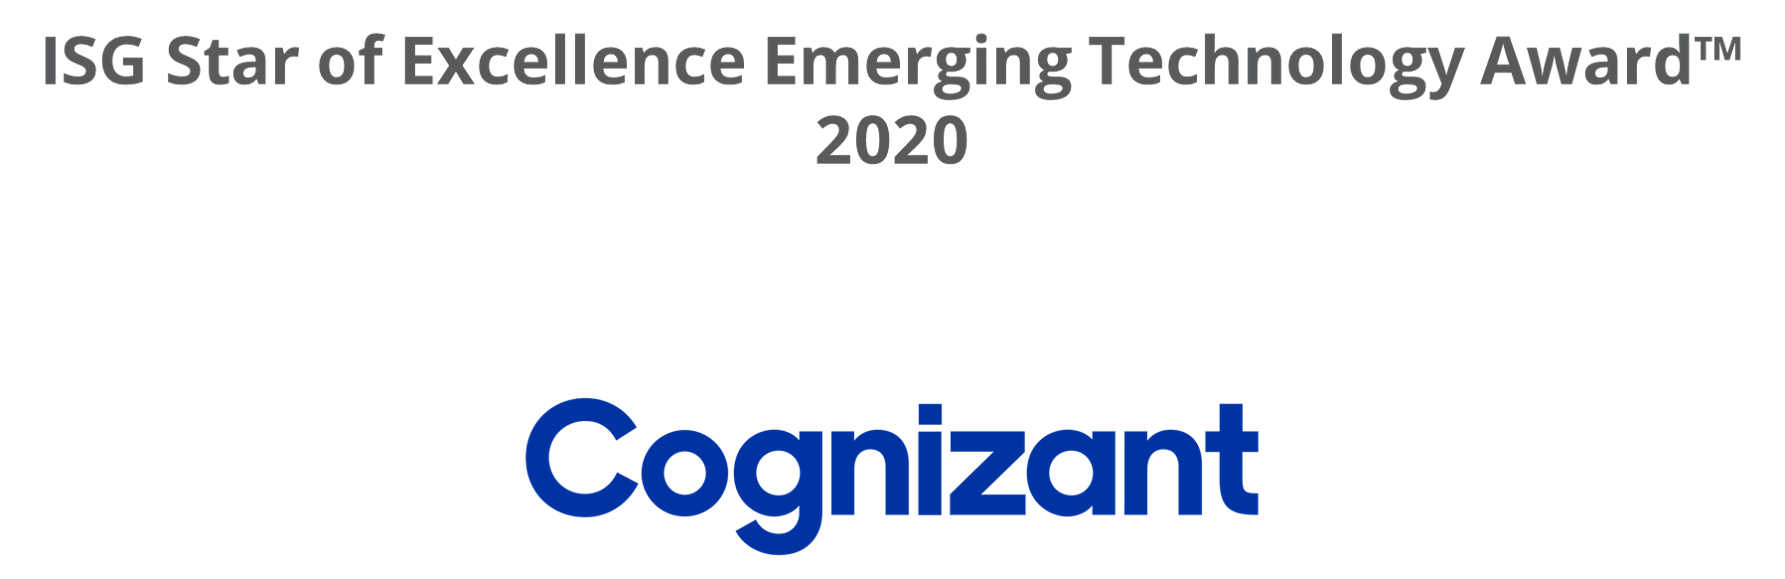 Emerging Technology Award-2020